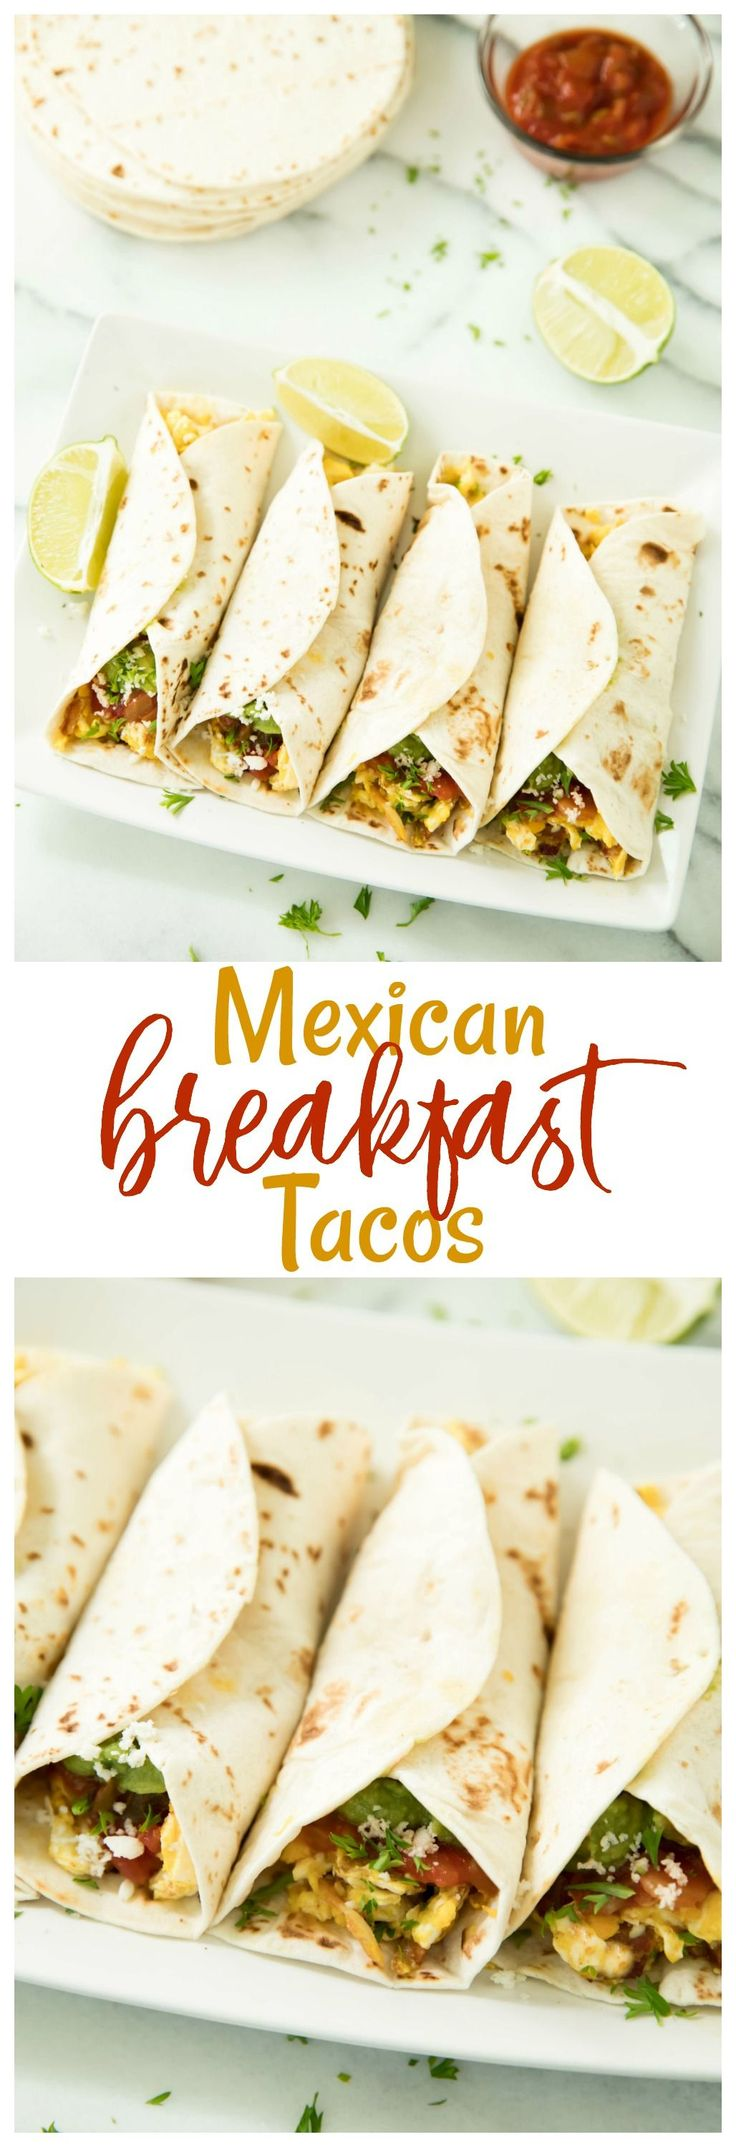 These Mexican Breakfast Tacos are the perfect healthy morning meal for on-the-go. They're so easy, delicious and can be made gluten free and vegetarian to please the whole family! AD